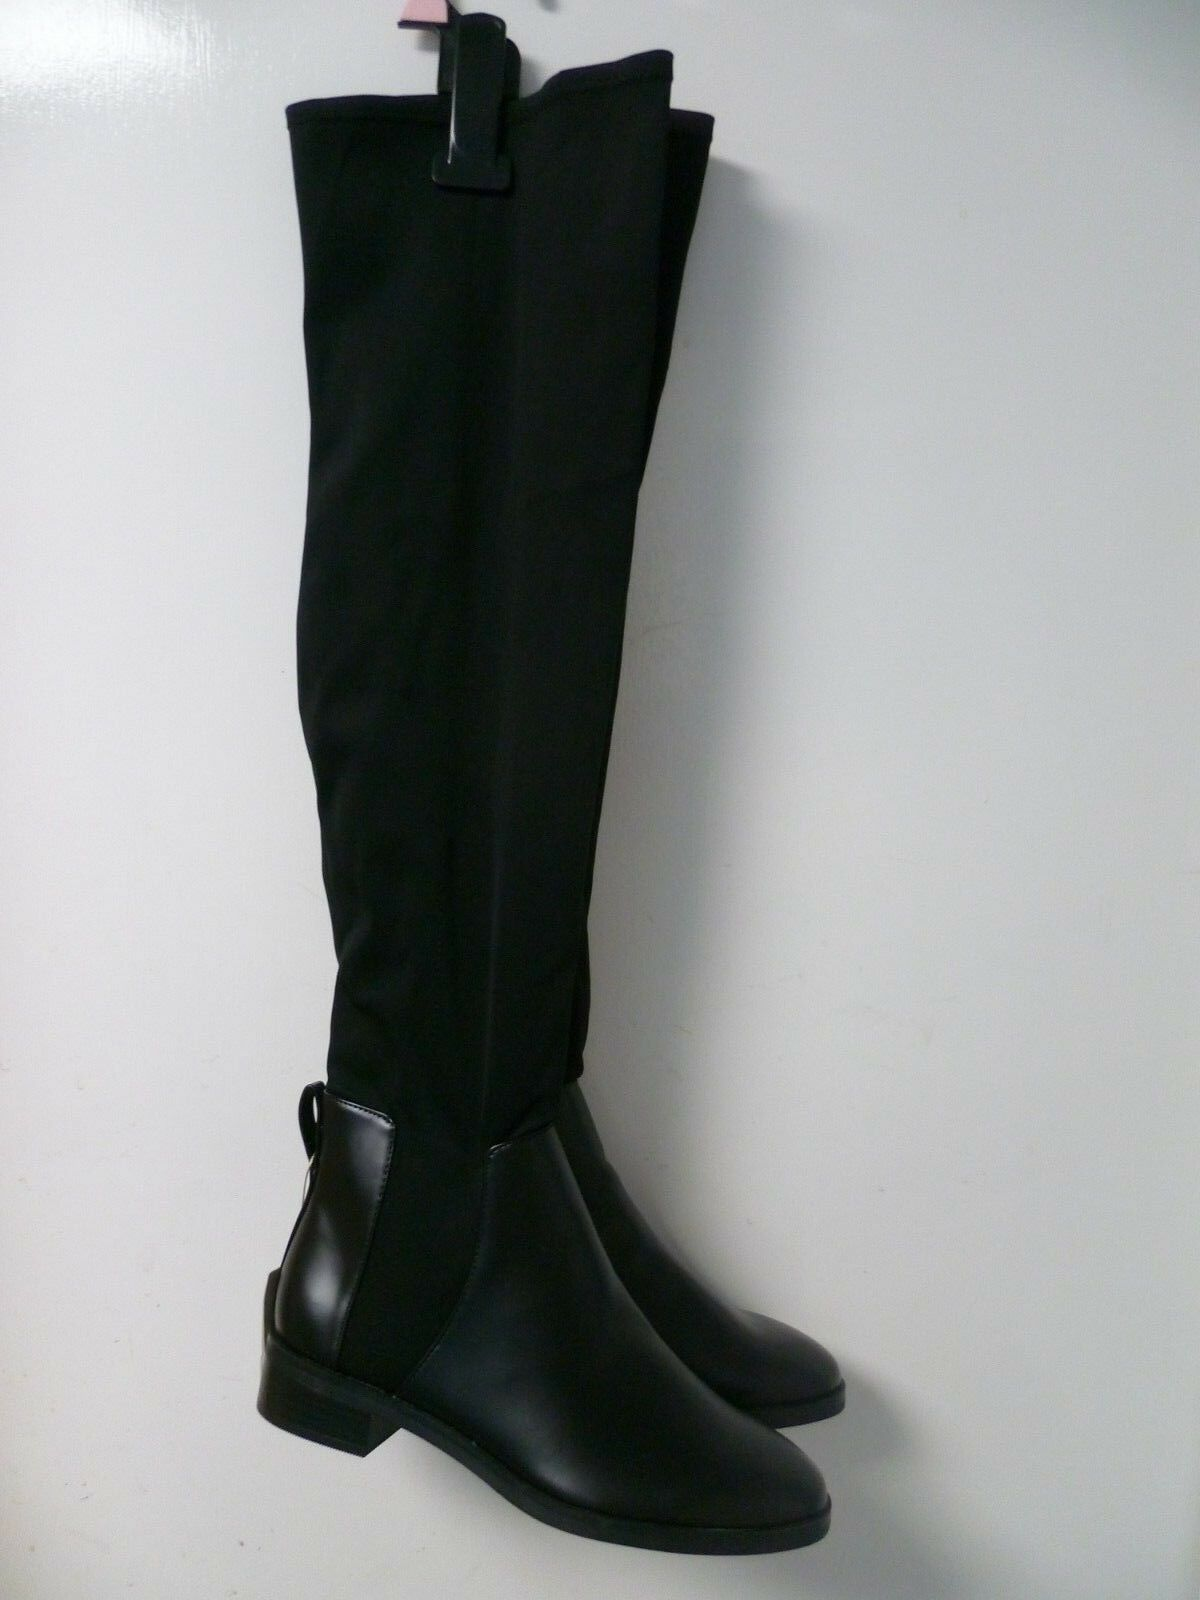 d2a259672c6 Stradivarius Knee Boots Black UK 4 EU 37 LN182 AB 03 Over Neoprene ...